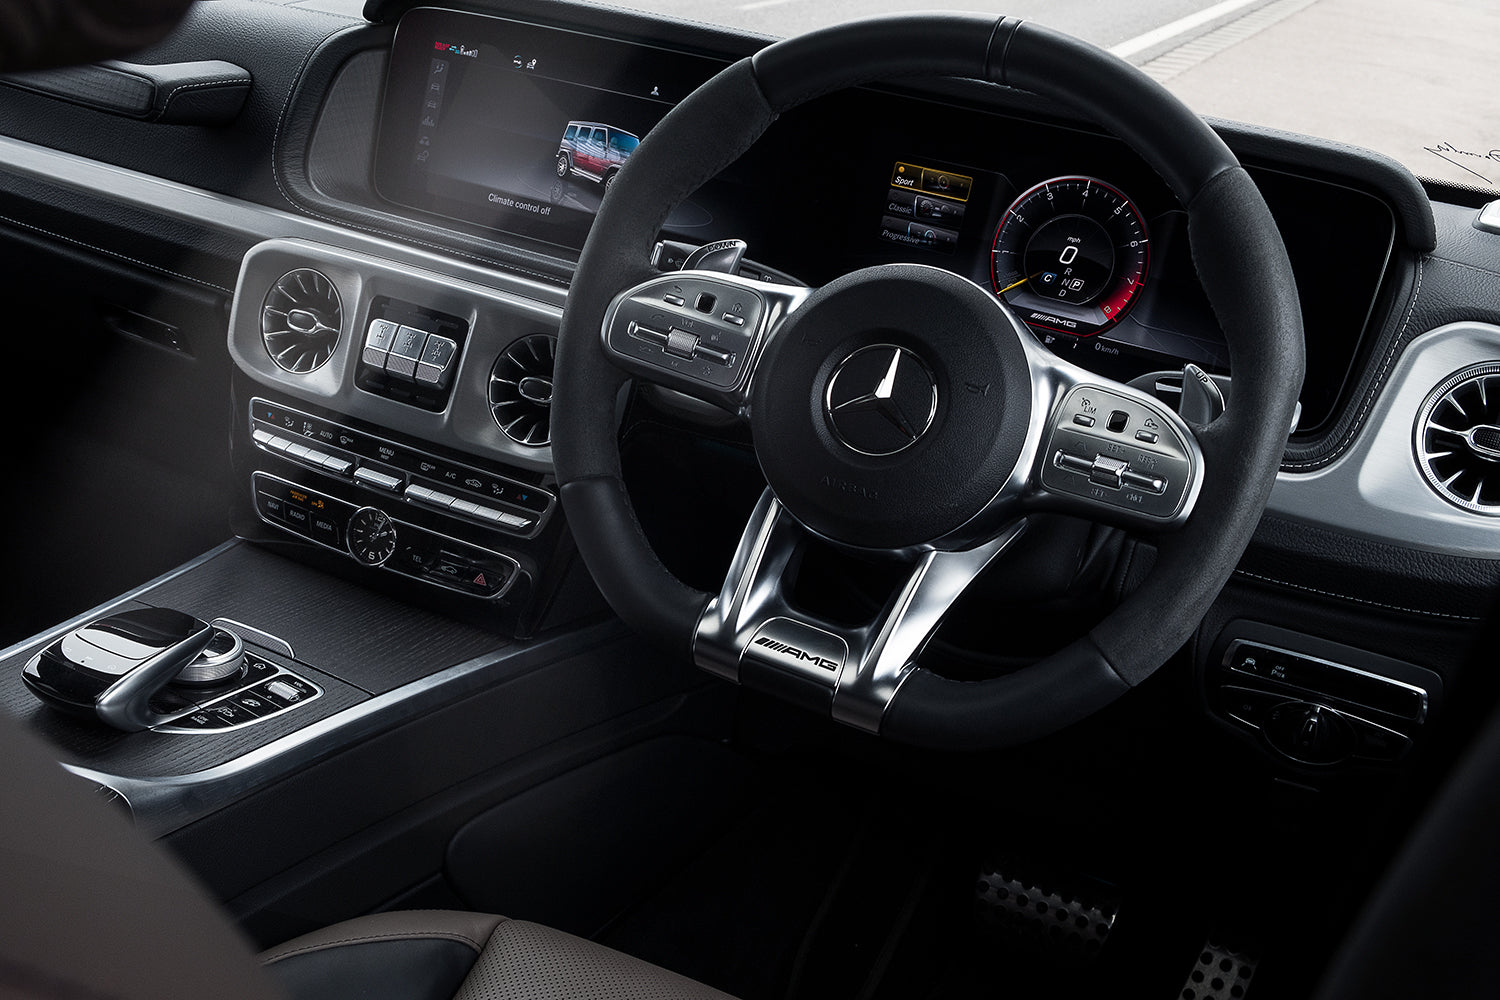 Rahul Patel Blog Mercedes Benz UK AMG G63 Car Snowdonia Wales UK Interior